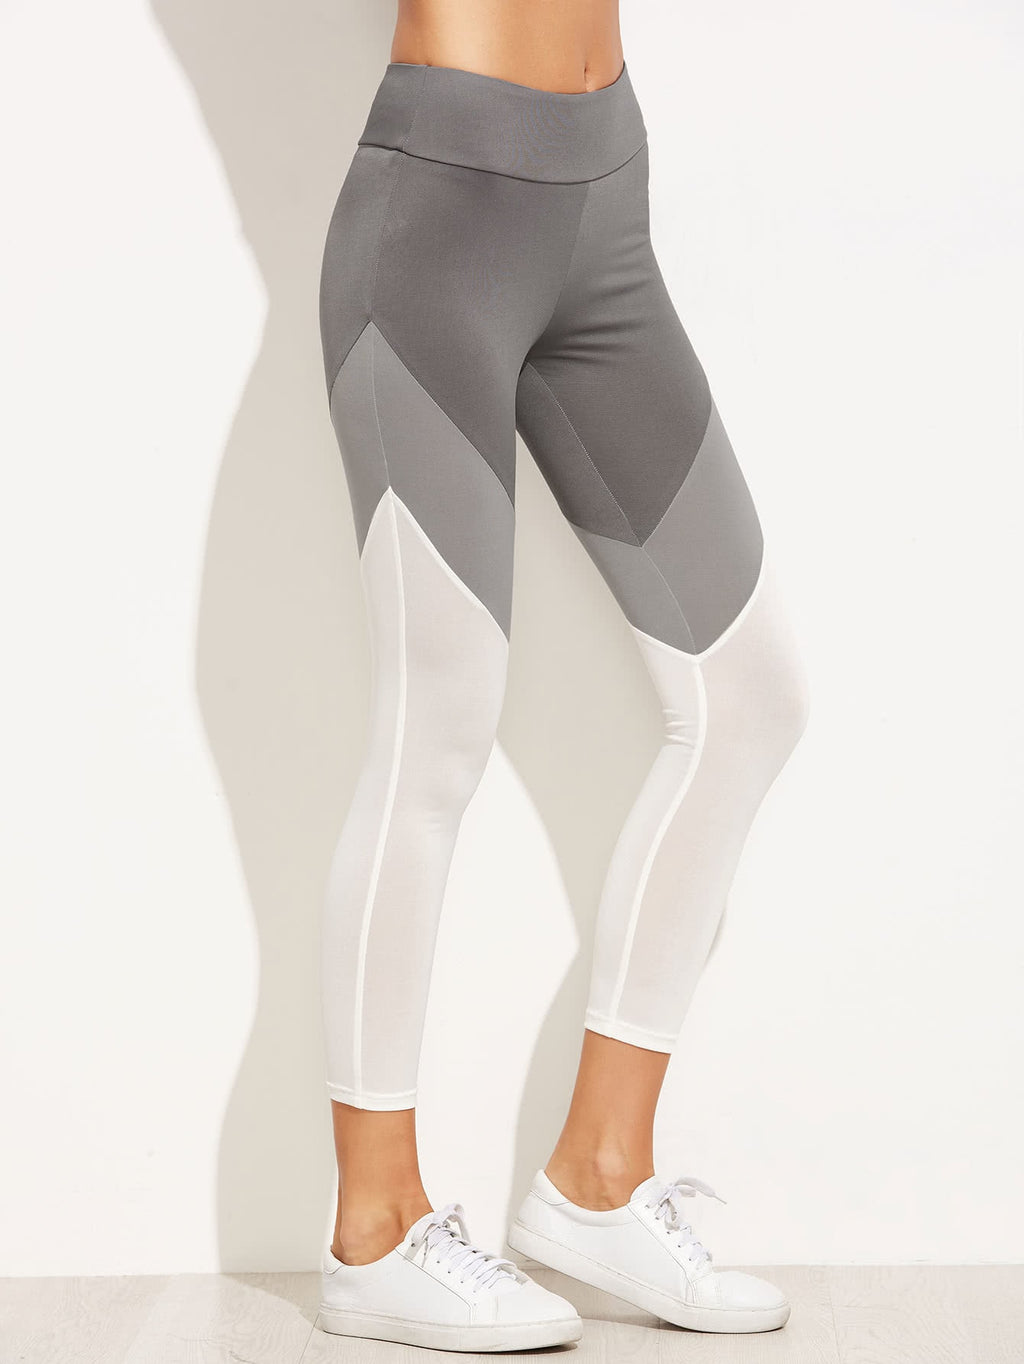 Leggings Leibbinde - kontrastfarbig